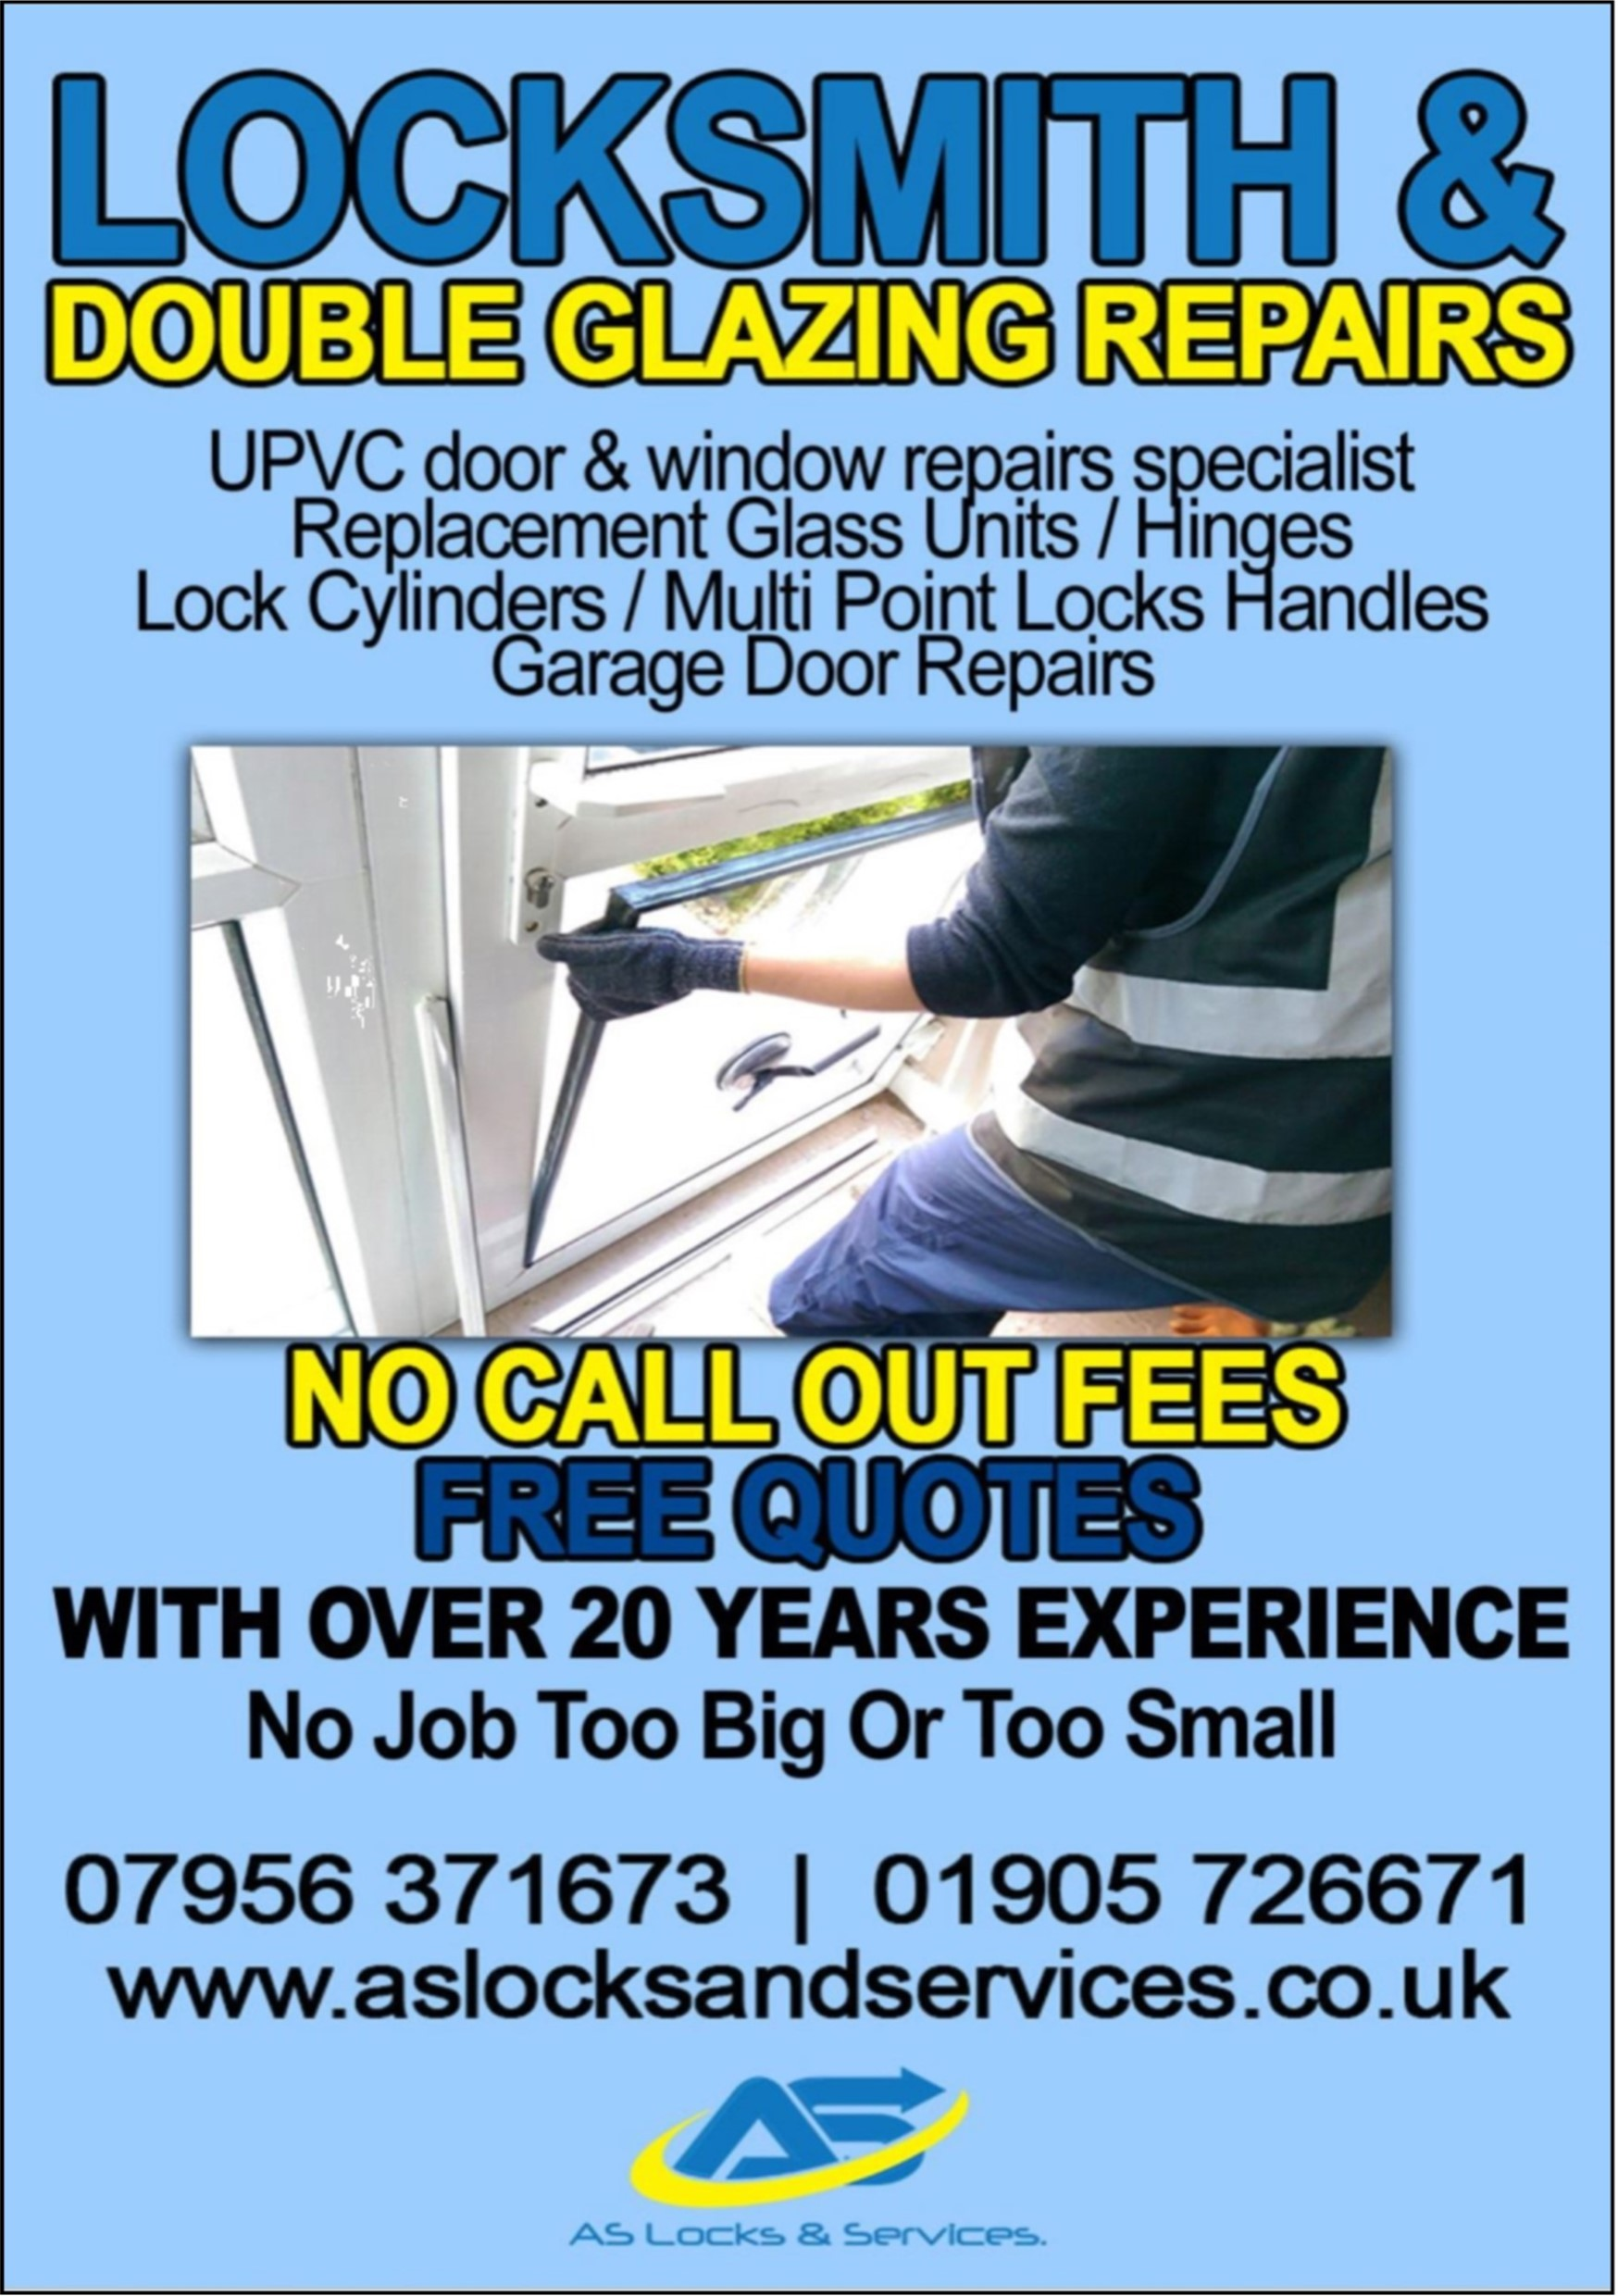 AS Locks - Locksmith - Double Glazing Repairs - Try us 1st Local Traders